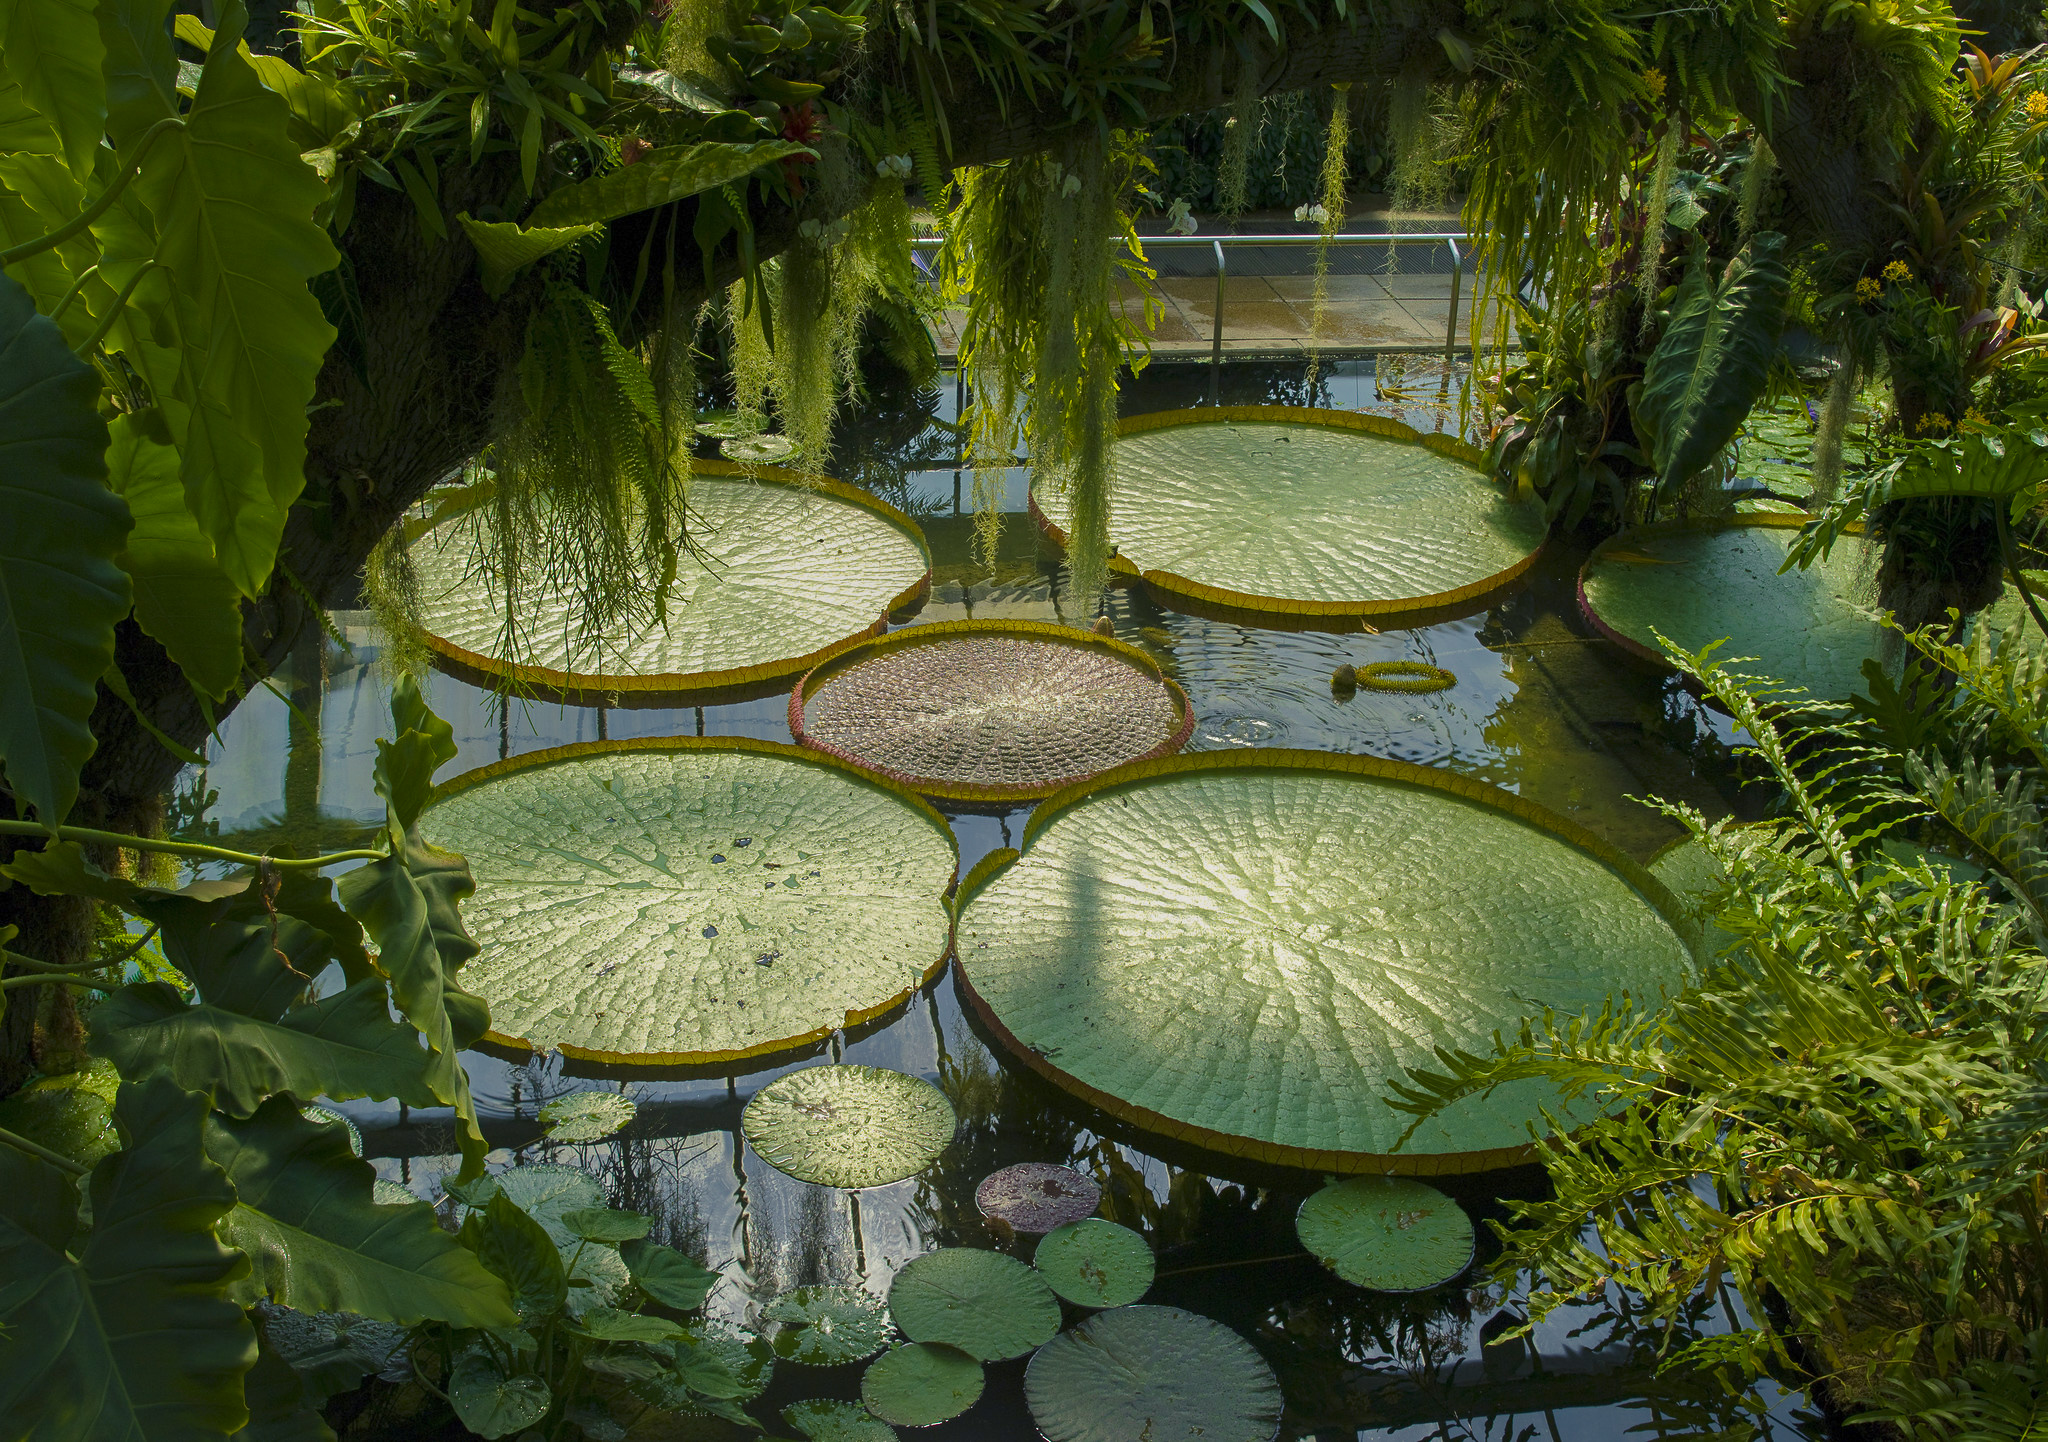 Victoria Amazonica waterlily in the Princess of Wales Conservatory